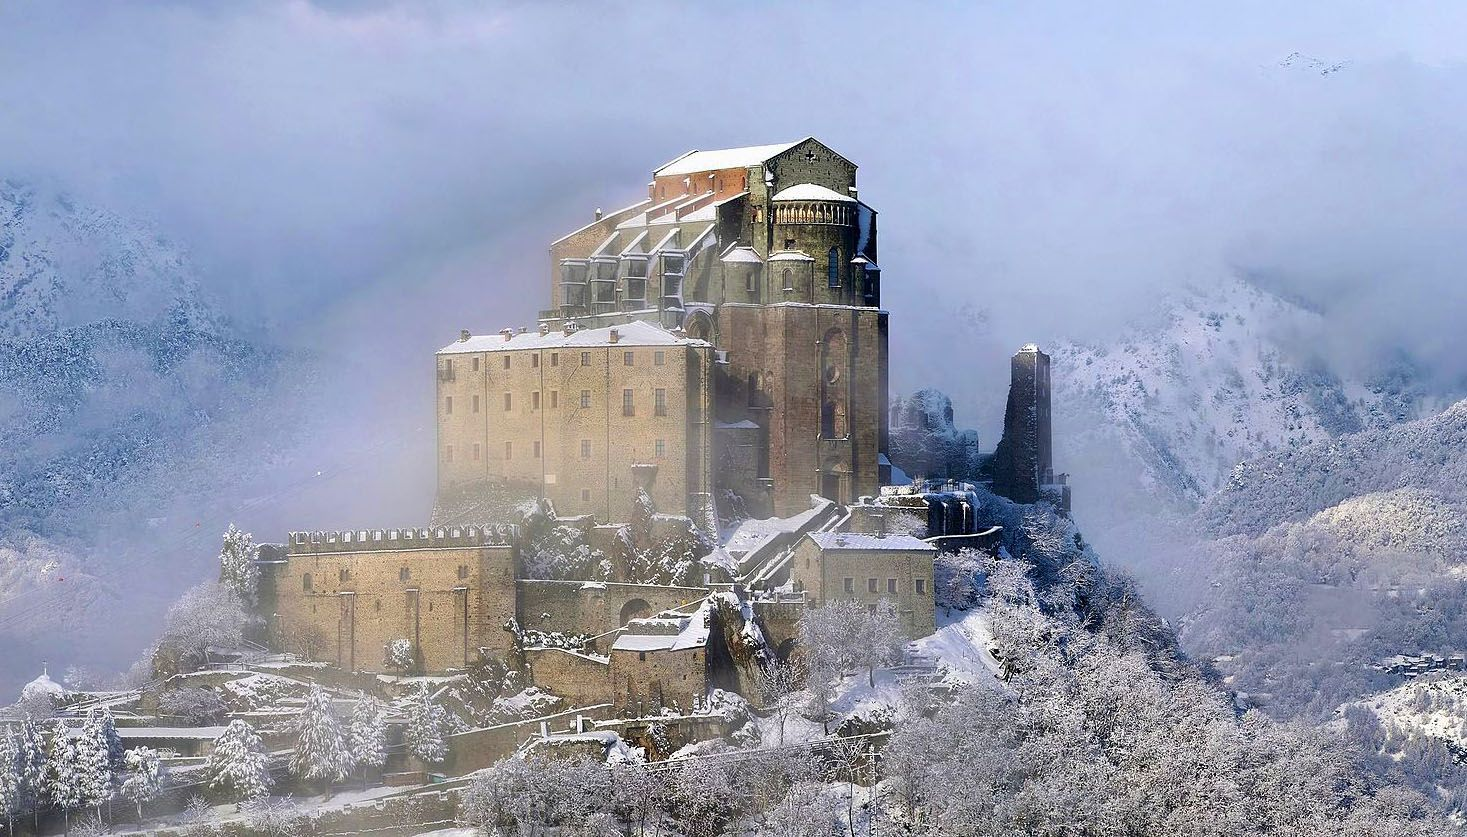 The Sacra di San Michele, is a religious complex on Mount Pirchiriano, situated on the south side of the Val di Susa overlooking the villages of Avigliana and Chiusa di San Michele. The abbey, which for much of its history came under Benedictine rule, is now entrusted to the Rosminians.